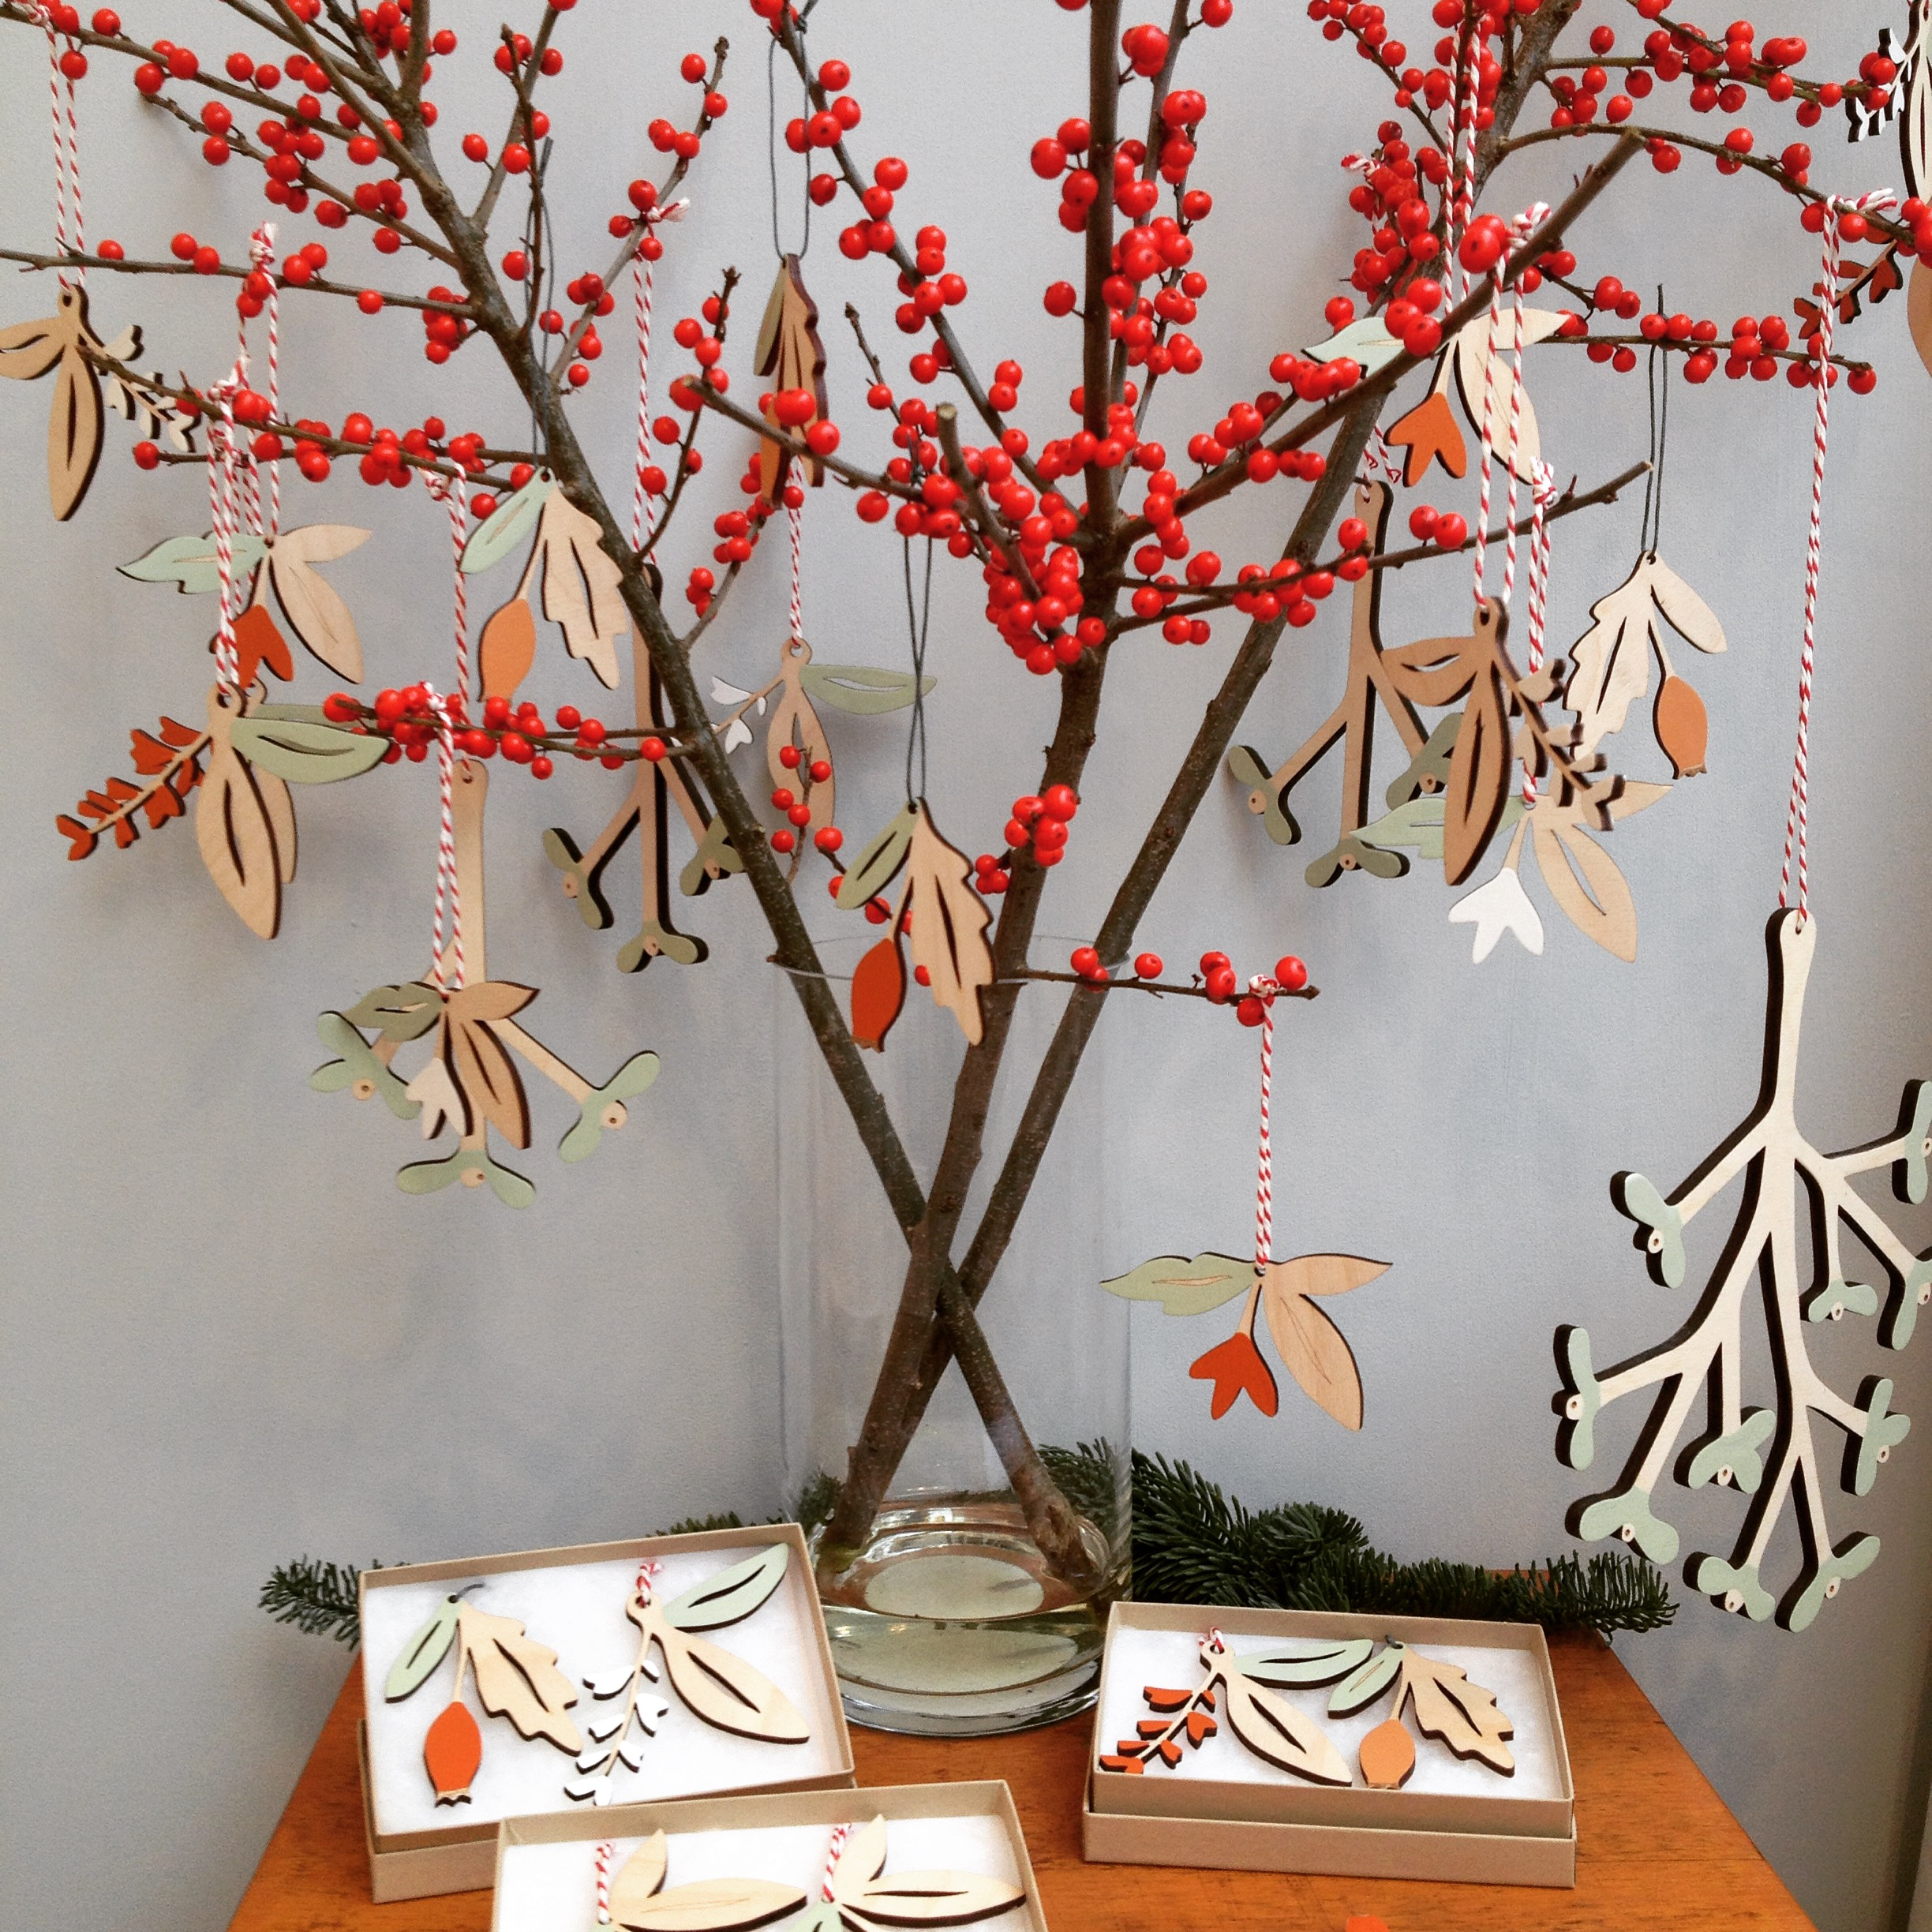 Style your wooden decorations with winter berries for beautiful effect.